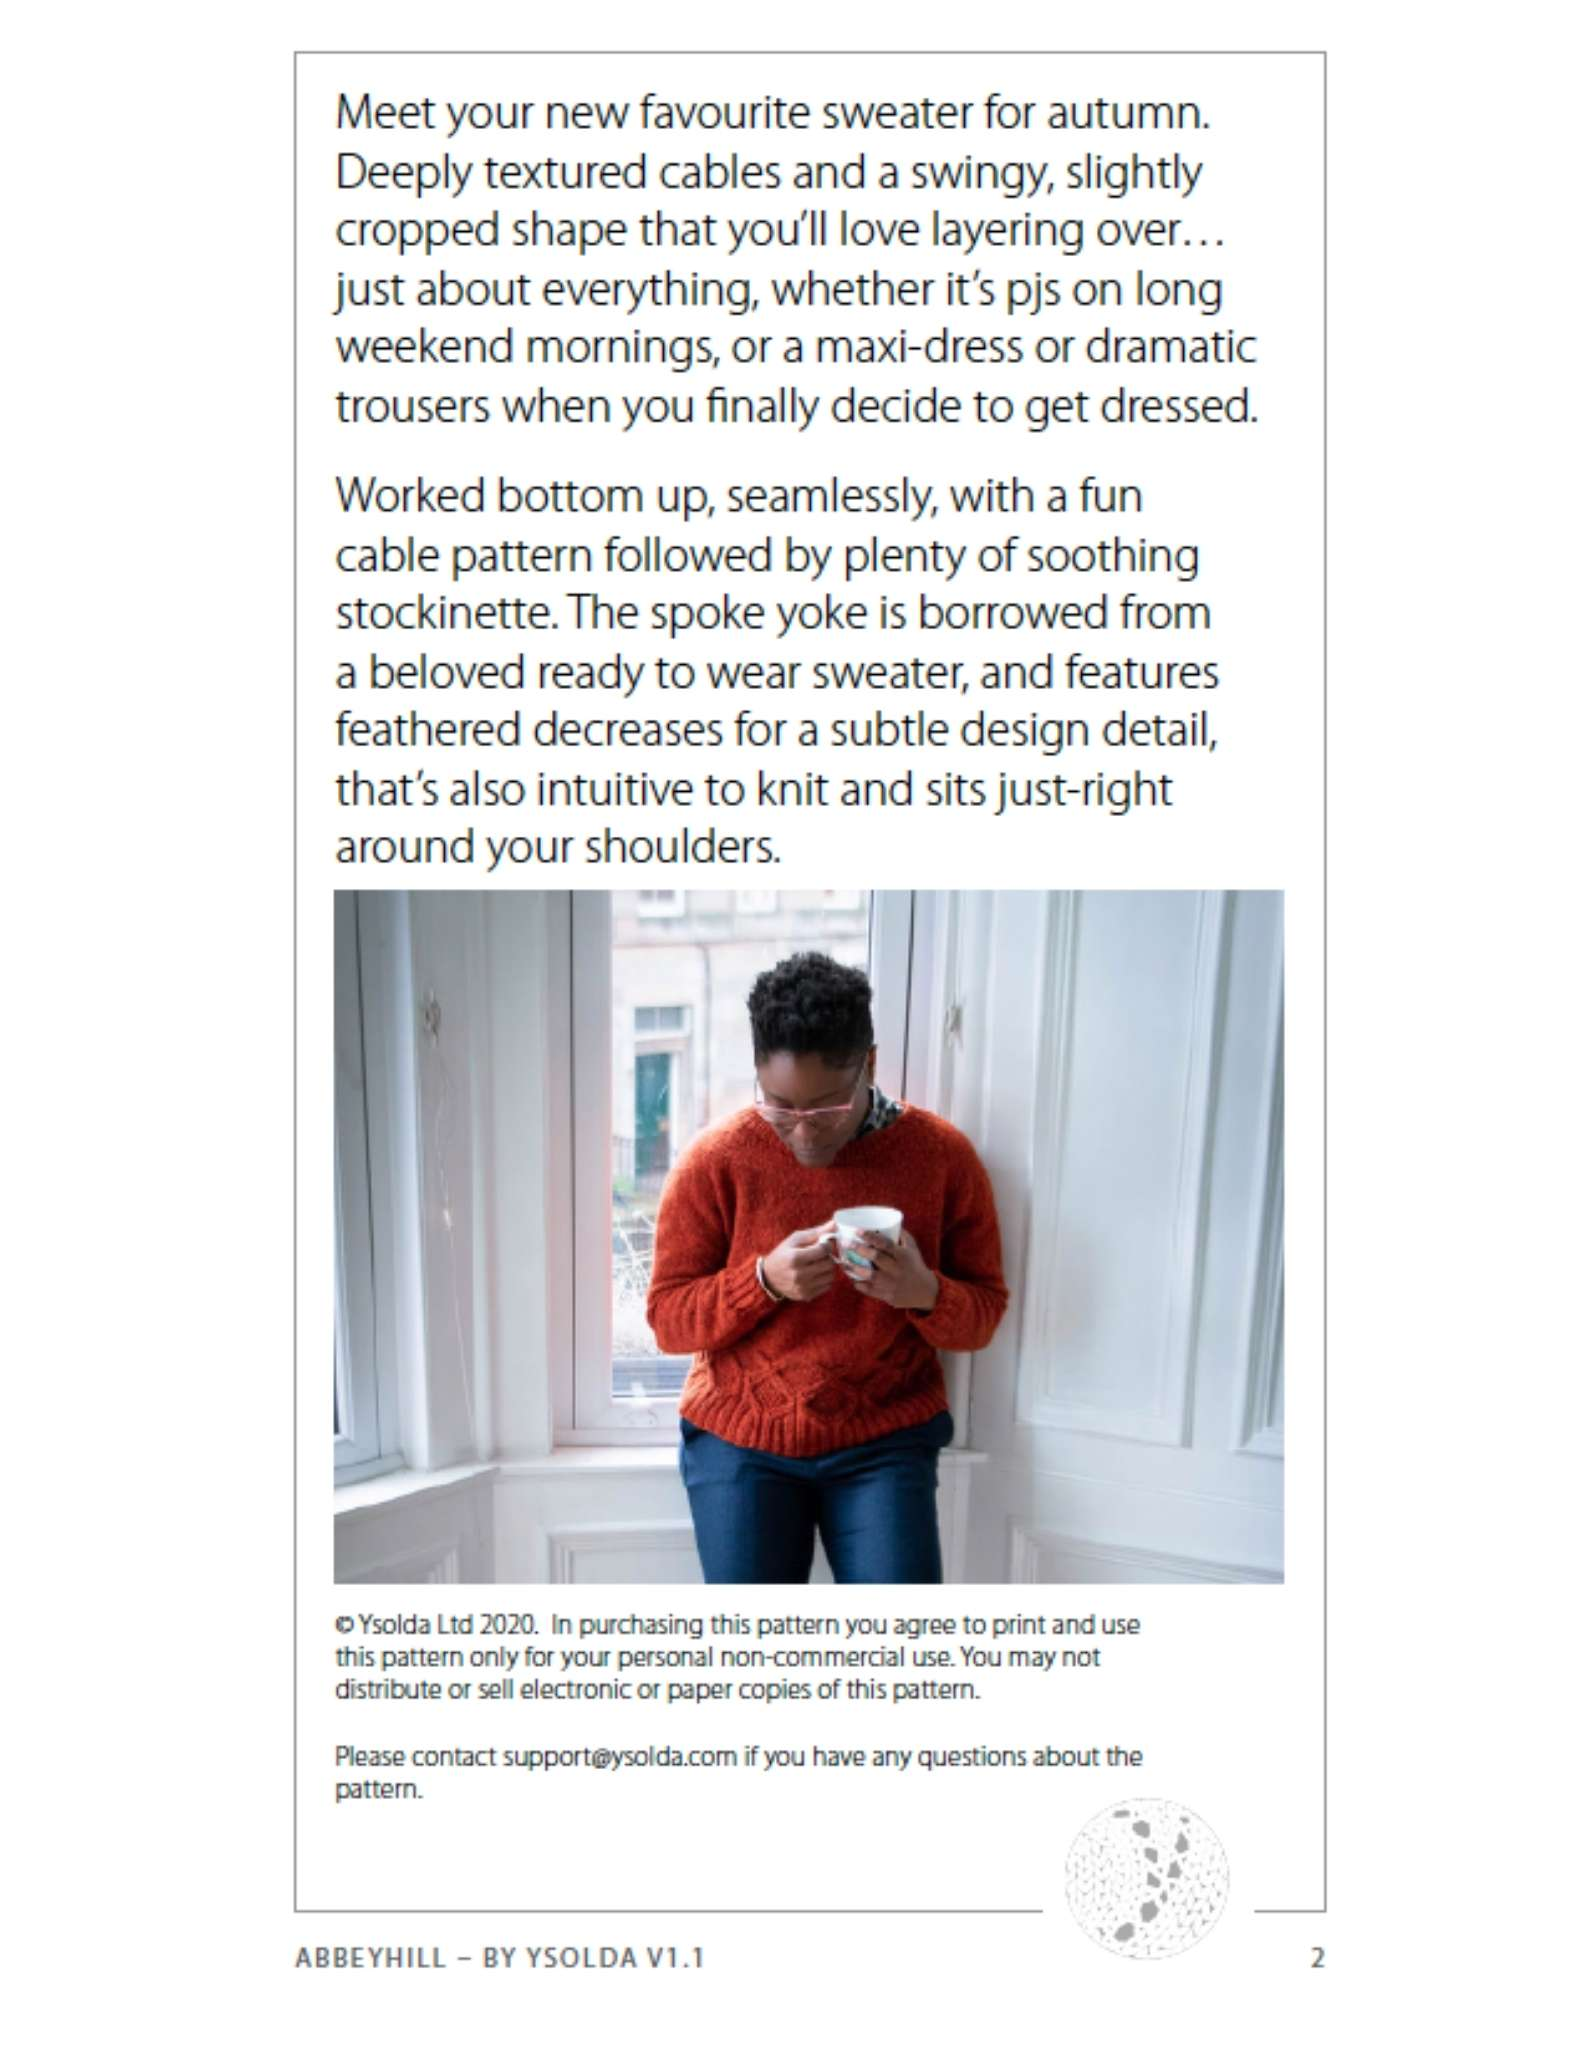 example of a mobile layout of a knitting pattern page with large black text at the top and an image of a black woman wearing an orange sweater underneath